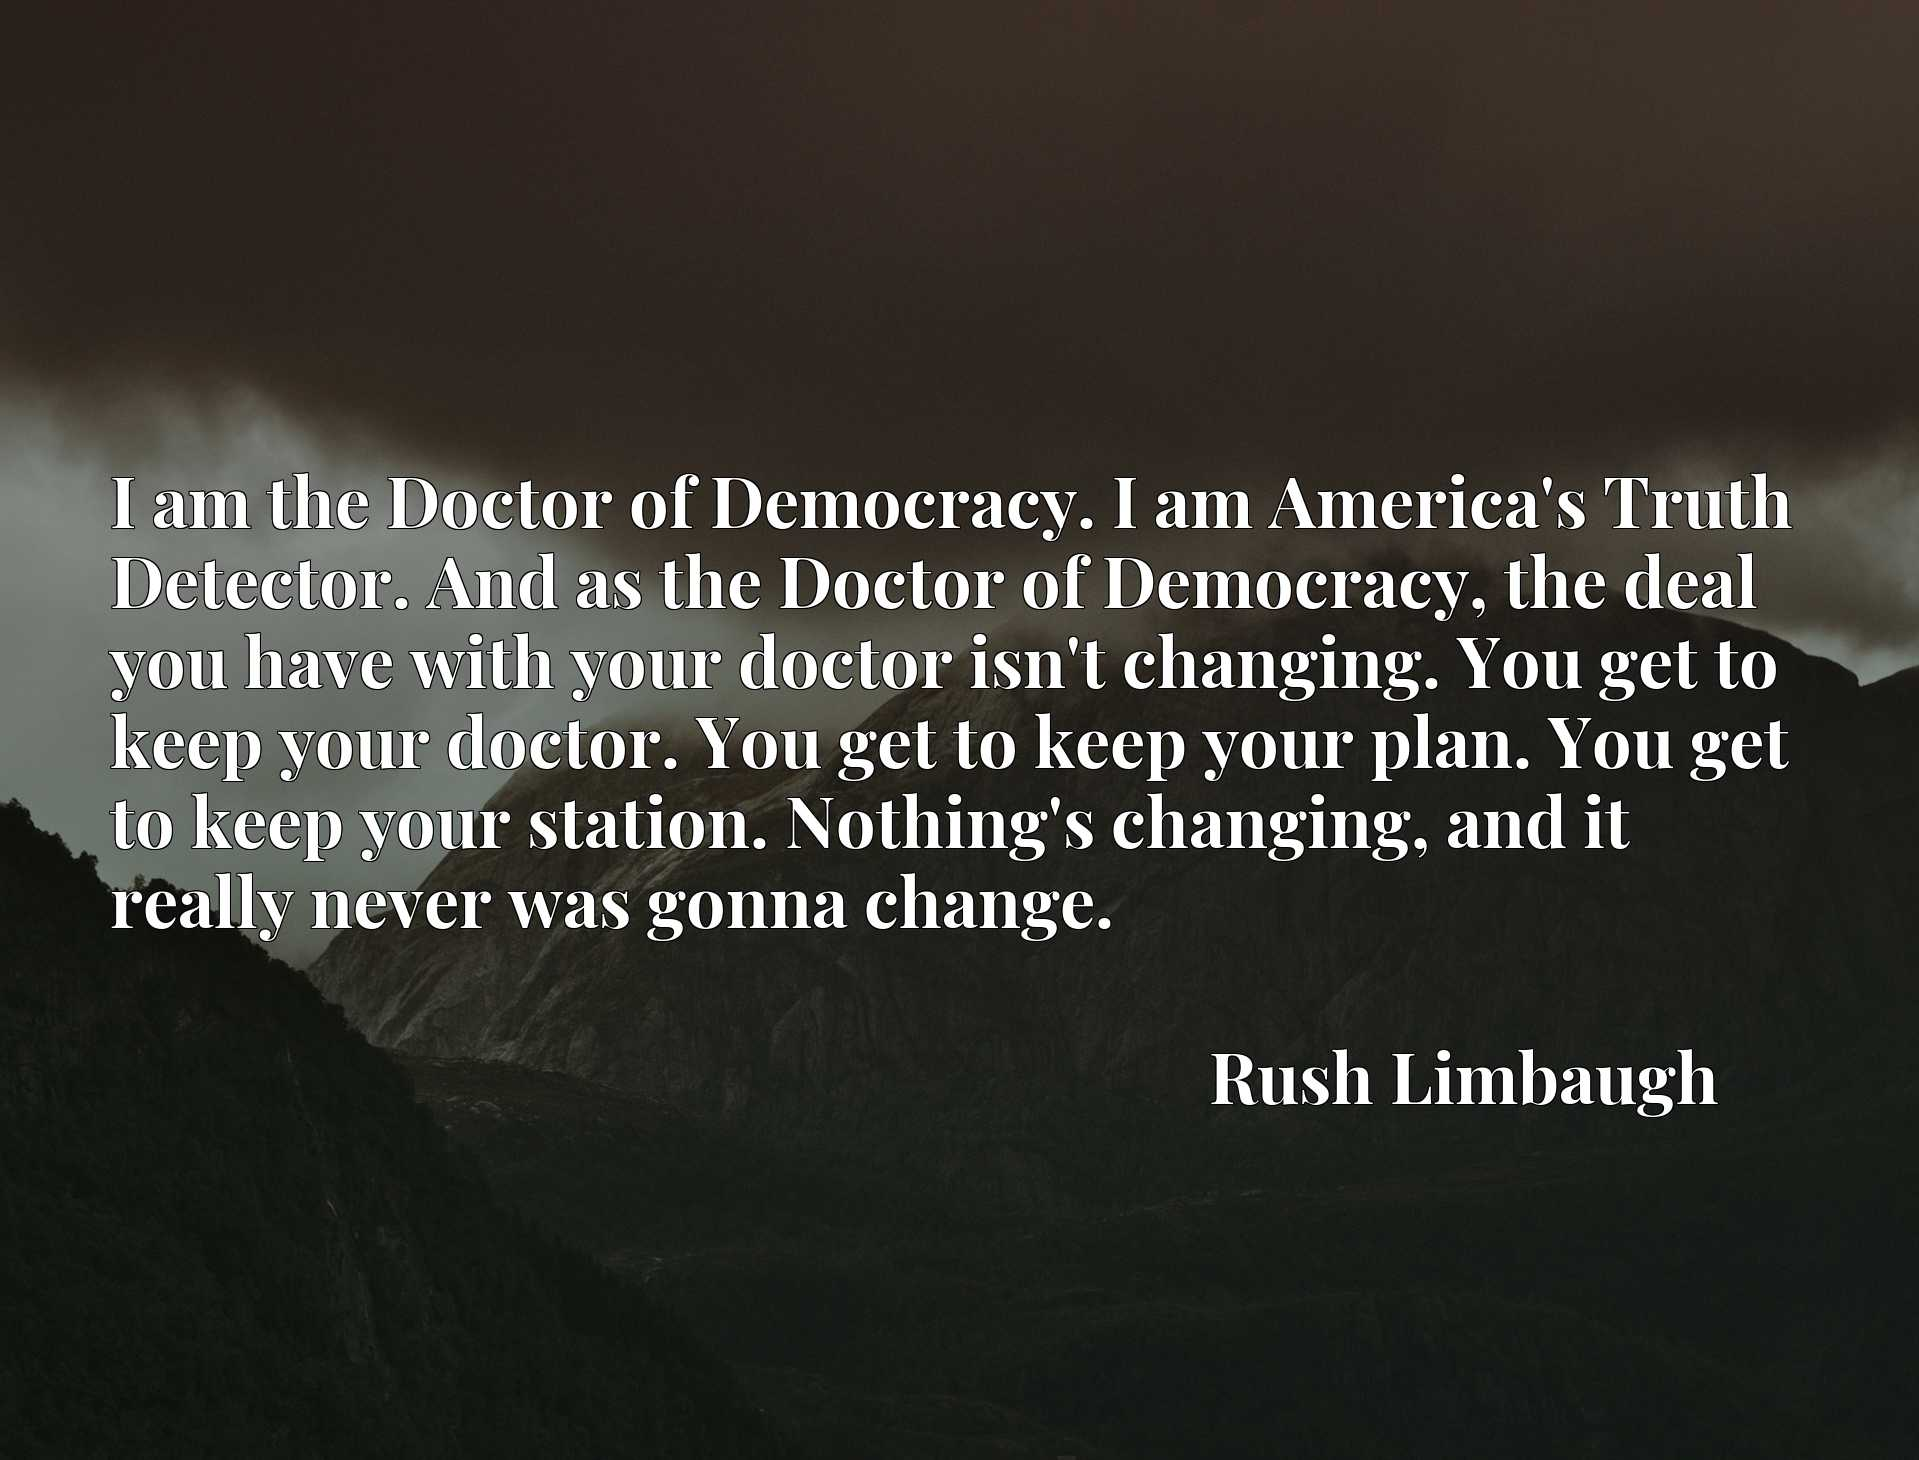 I am the Doctor of Democracy. I am America's Truth Detector. And as the Doctor of Democracy, the deal you have with your doctor isn't changing. You get to keep your doctor. You get to keep your plan. You get to keep your station. Nothing's changing, and it really never was gonna change.